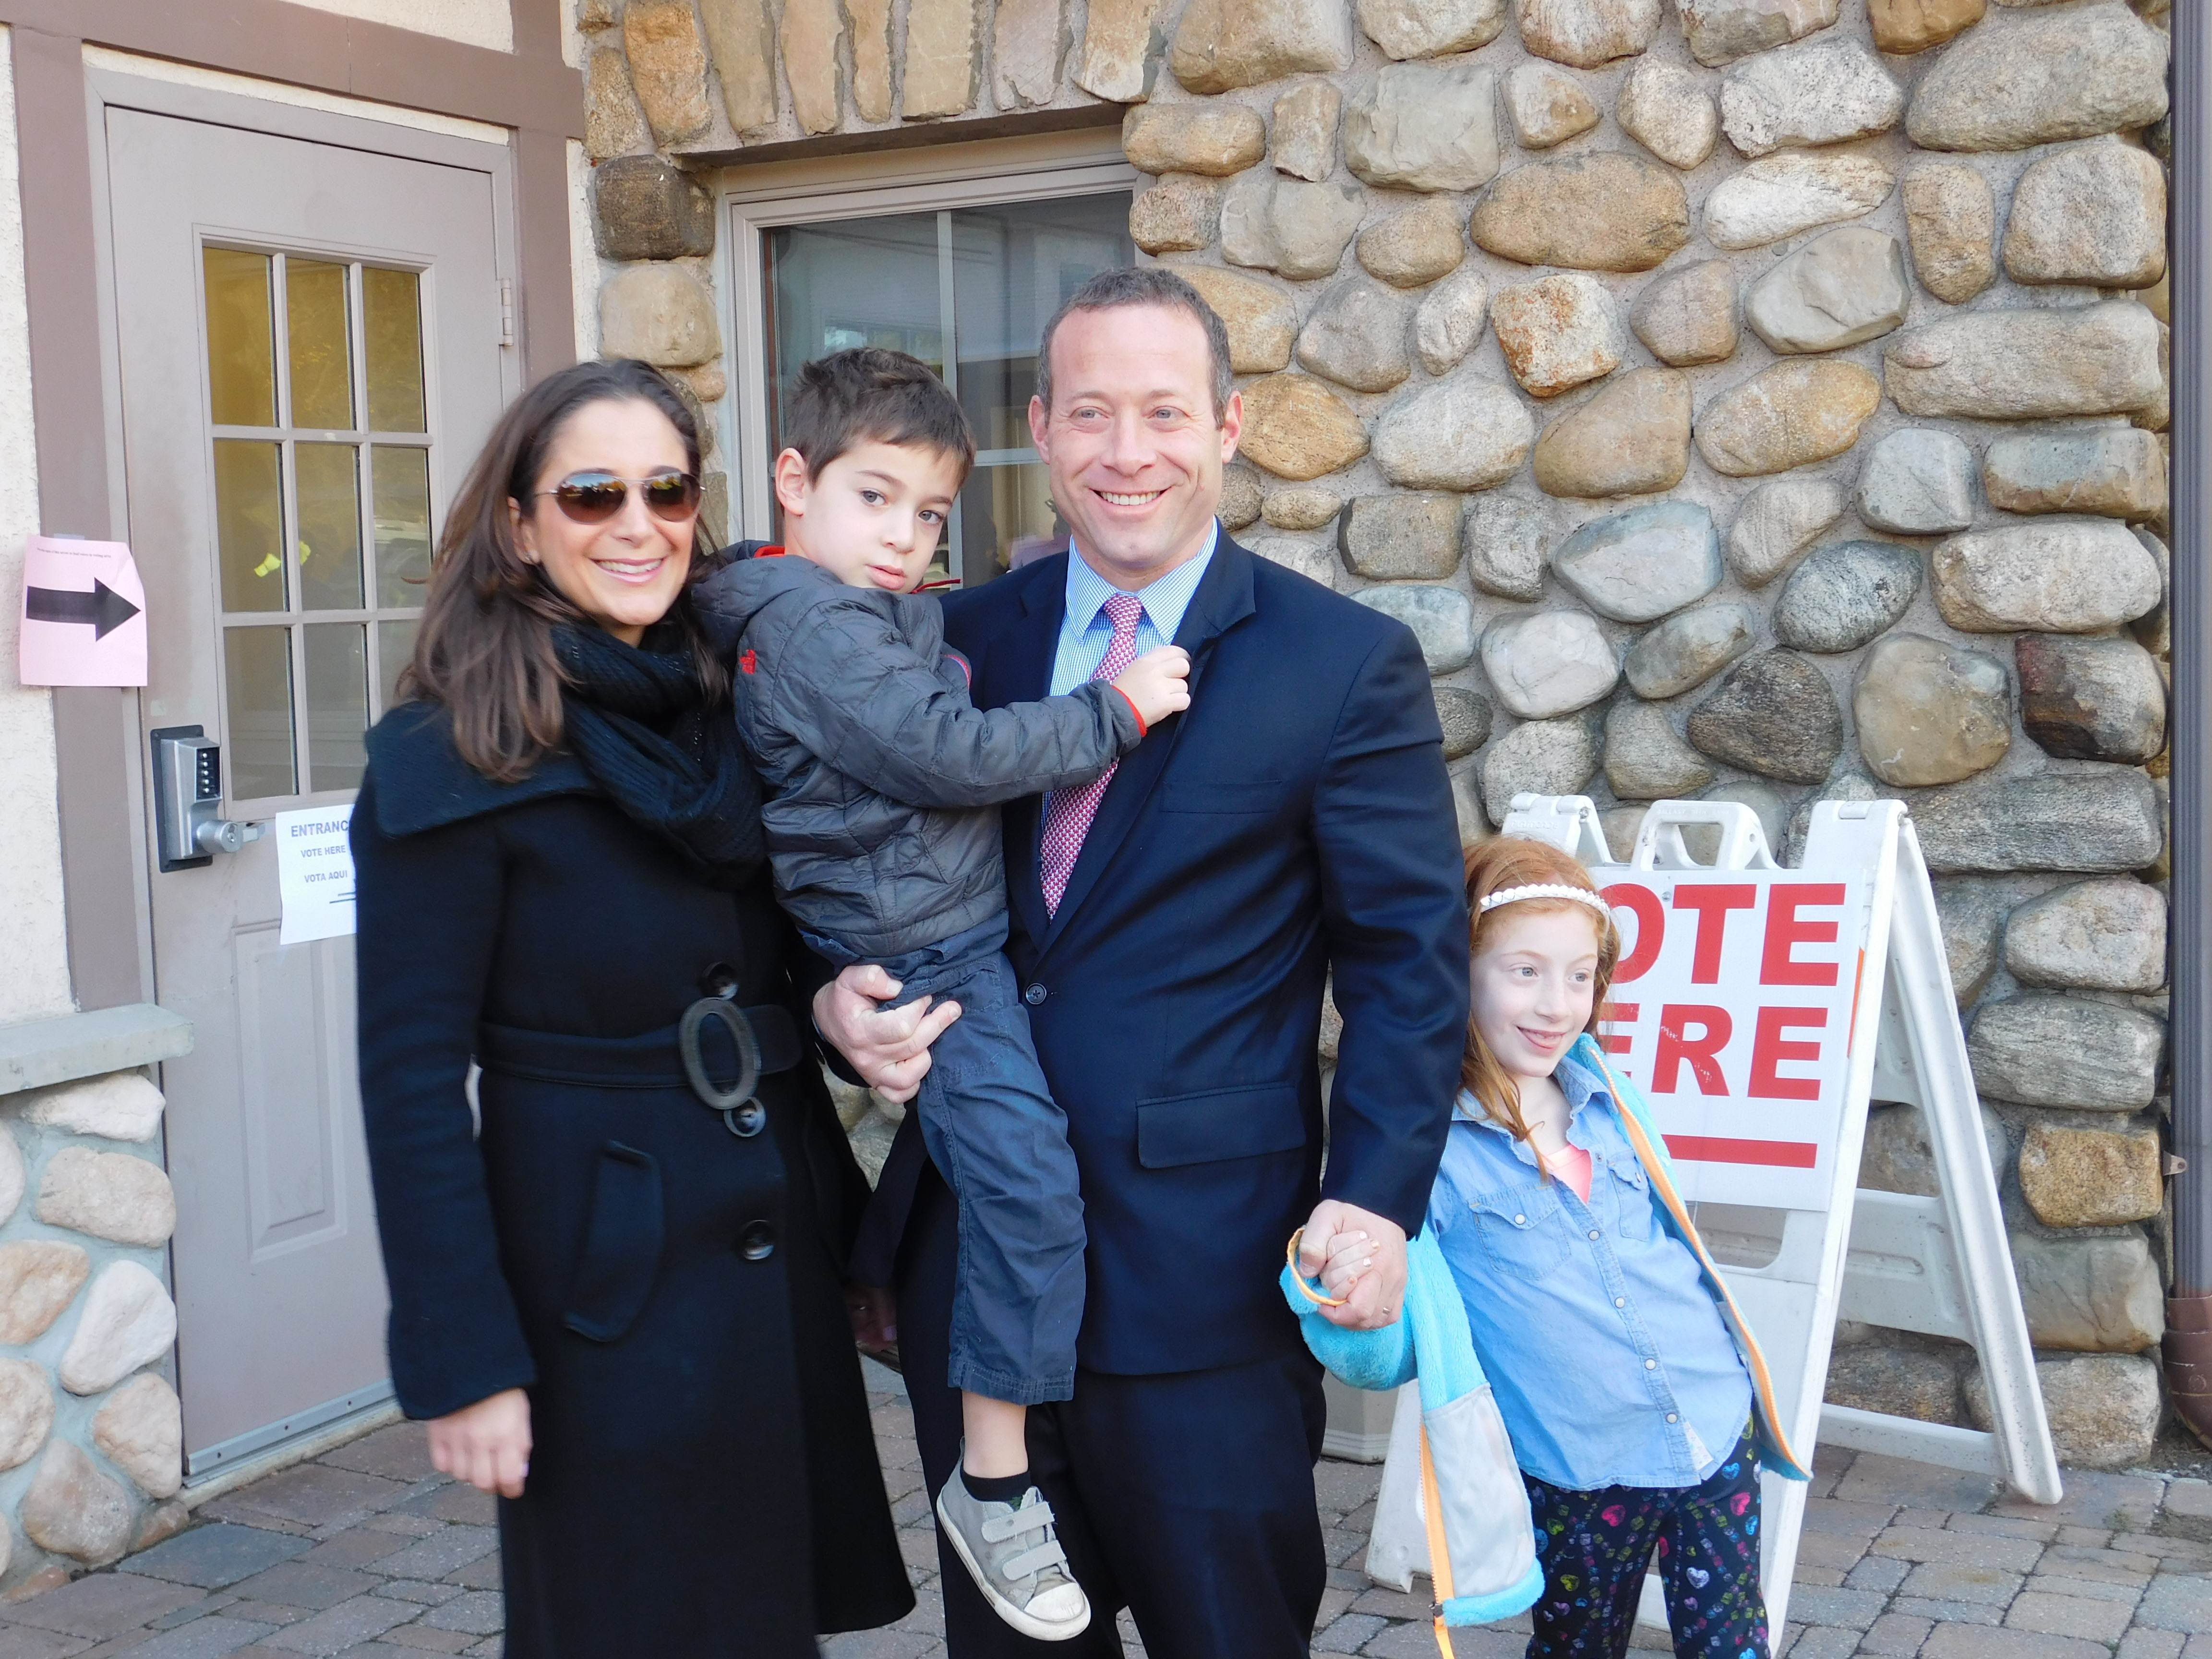 Gottheimer and his family arrive at a Wyckoff polling location.